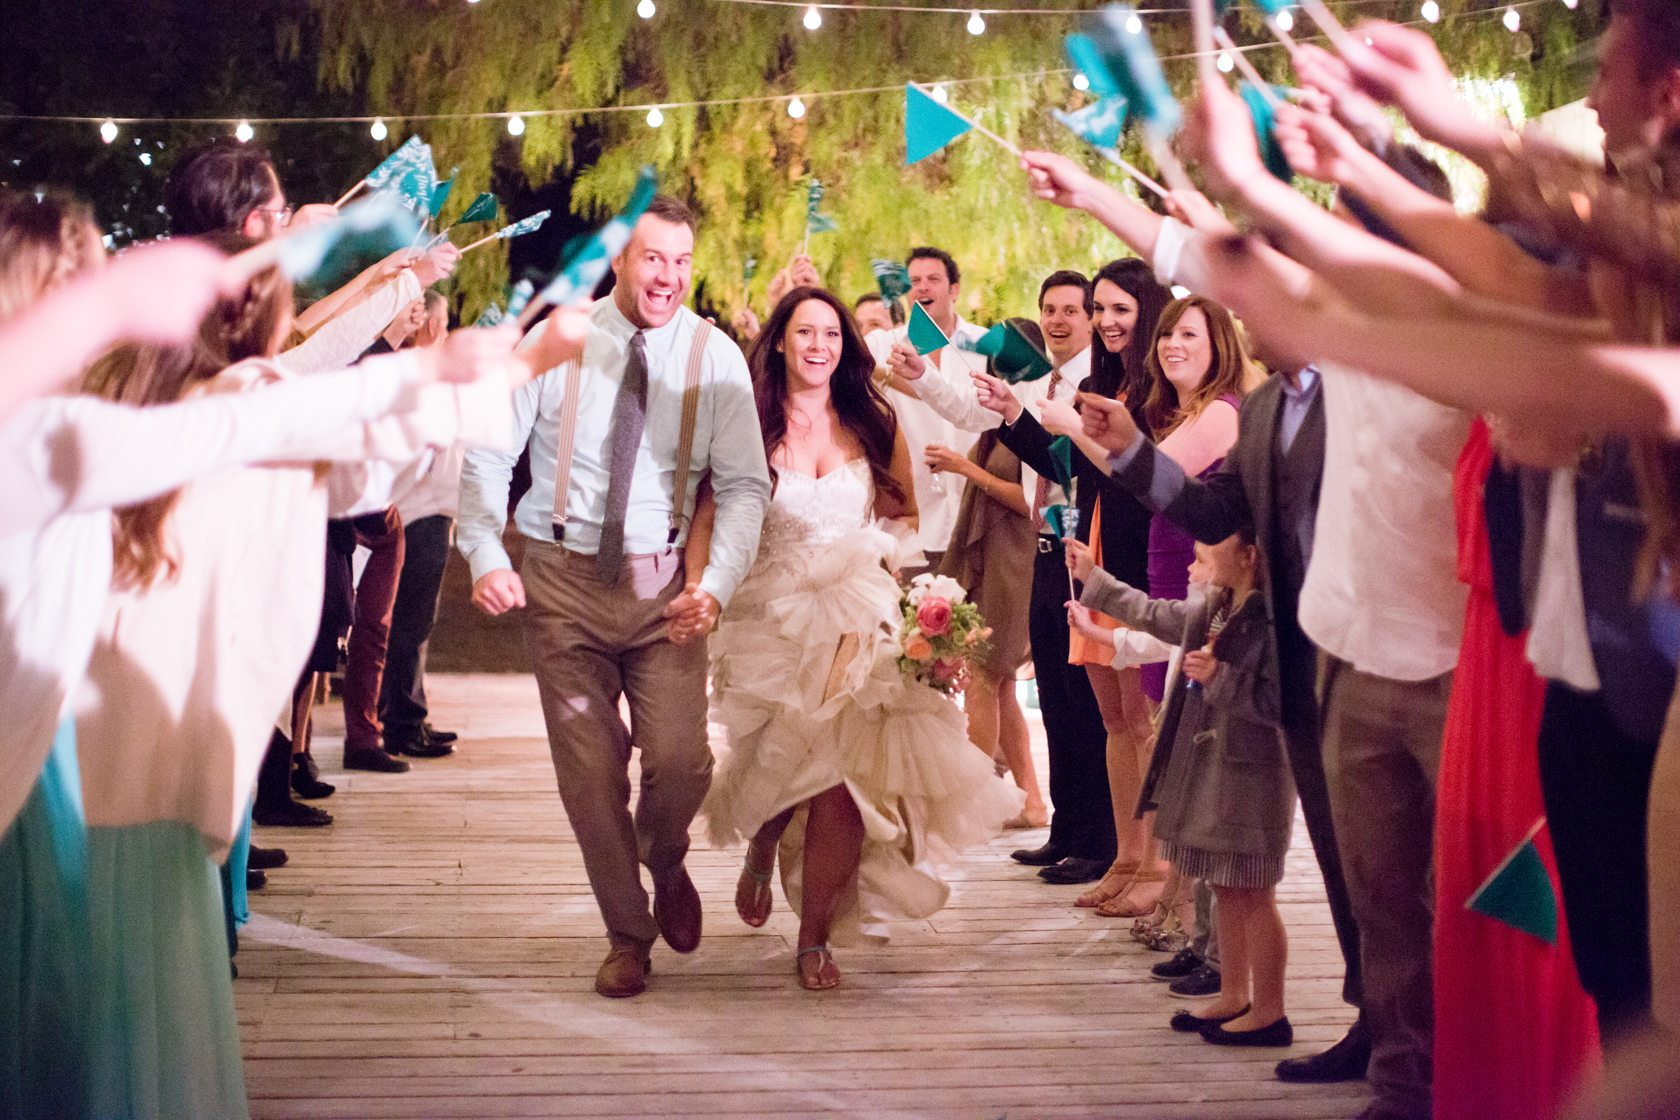 The_Printed_Palette_Wedding_at_Calamigos_Ranch_167.jpg